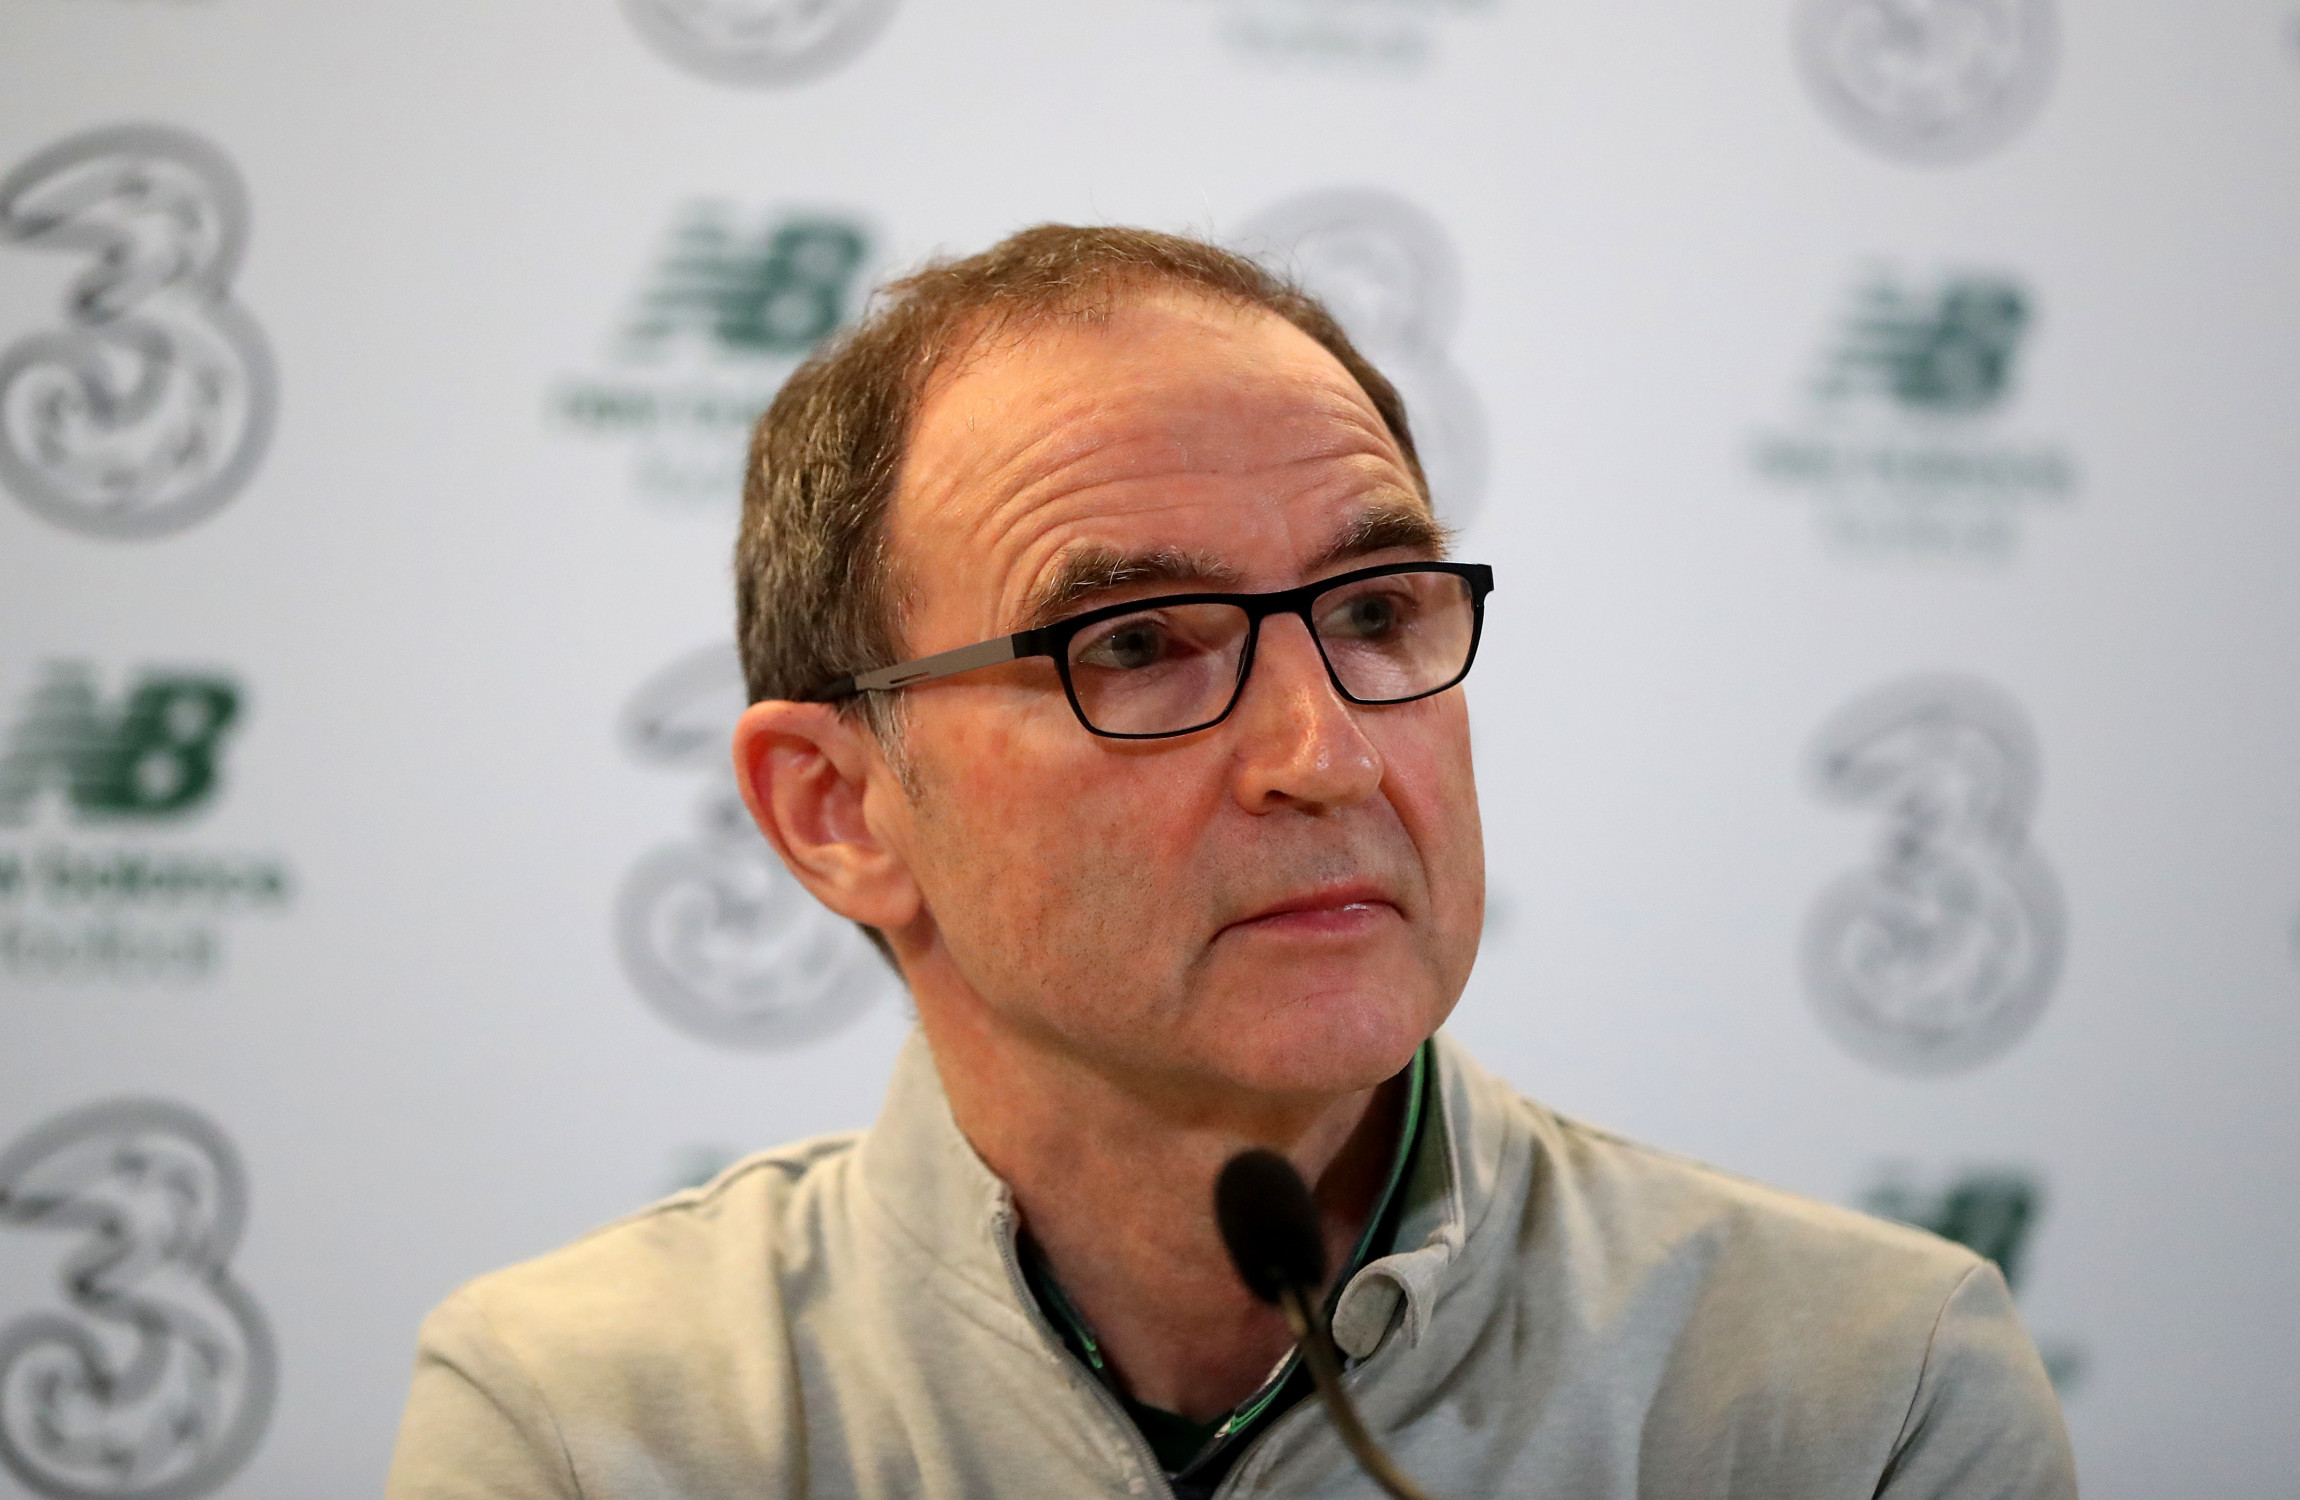 Stoke aim to appoint Martin O'Neill in next 48 hours